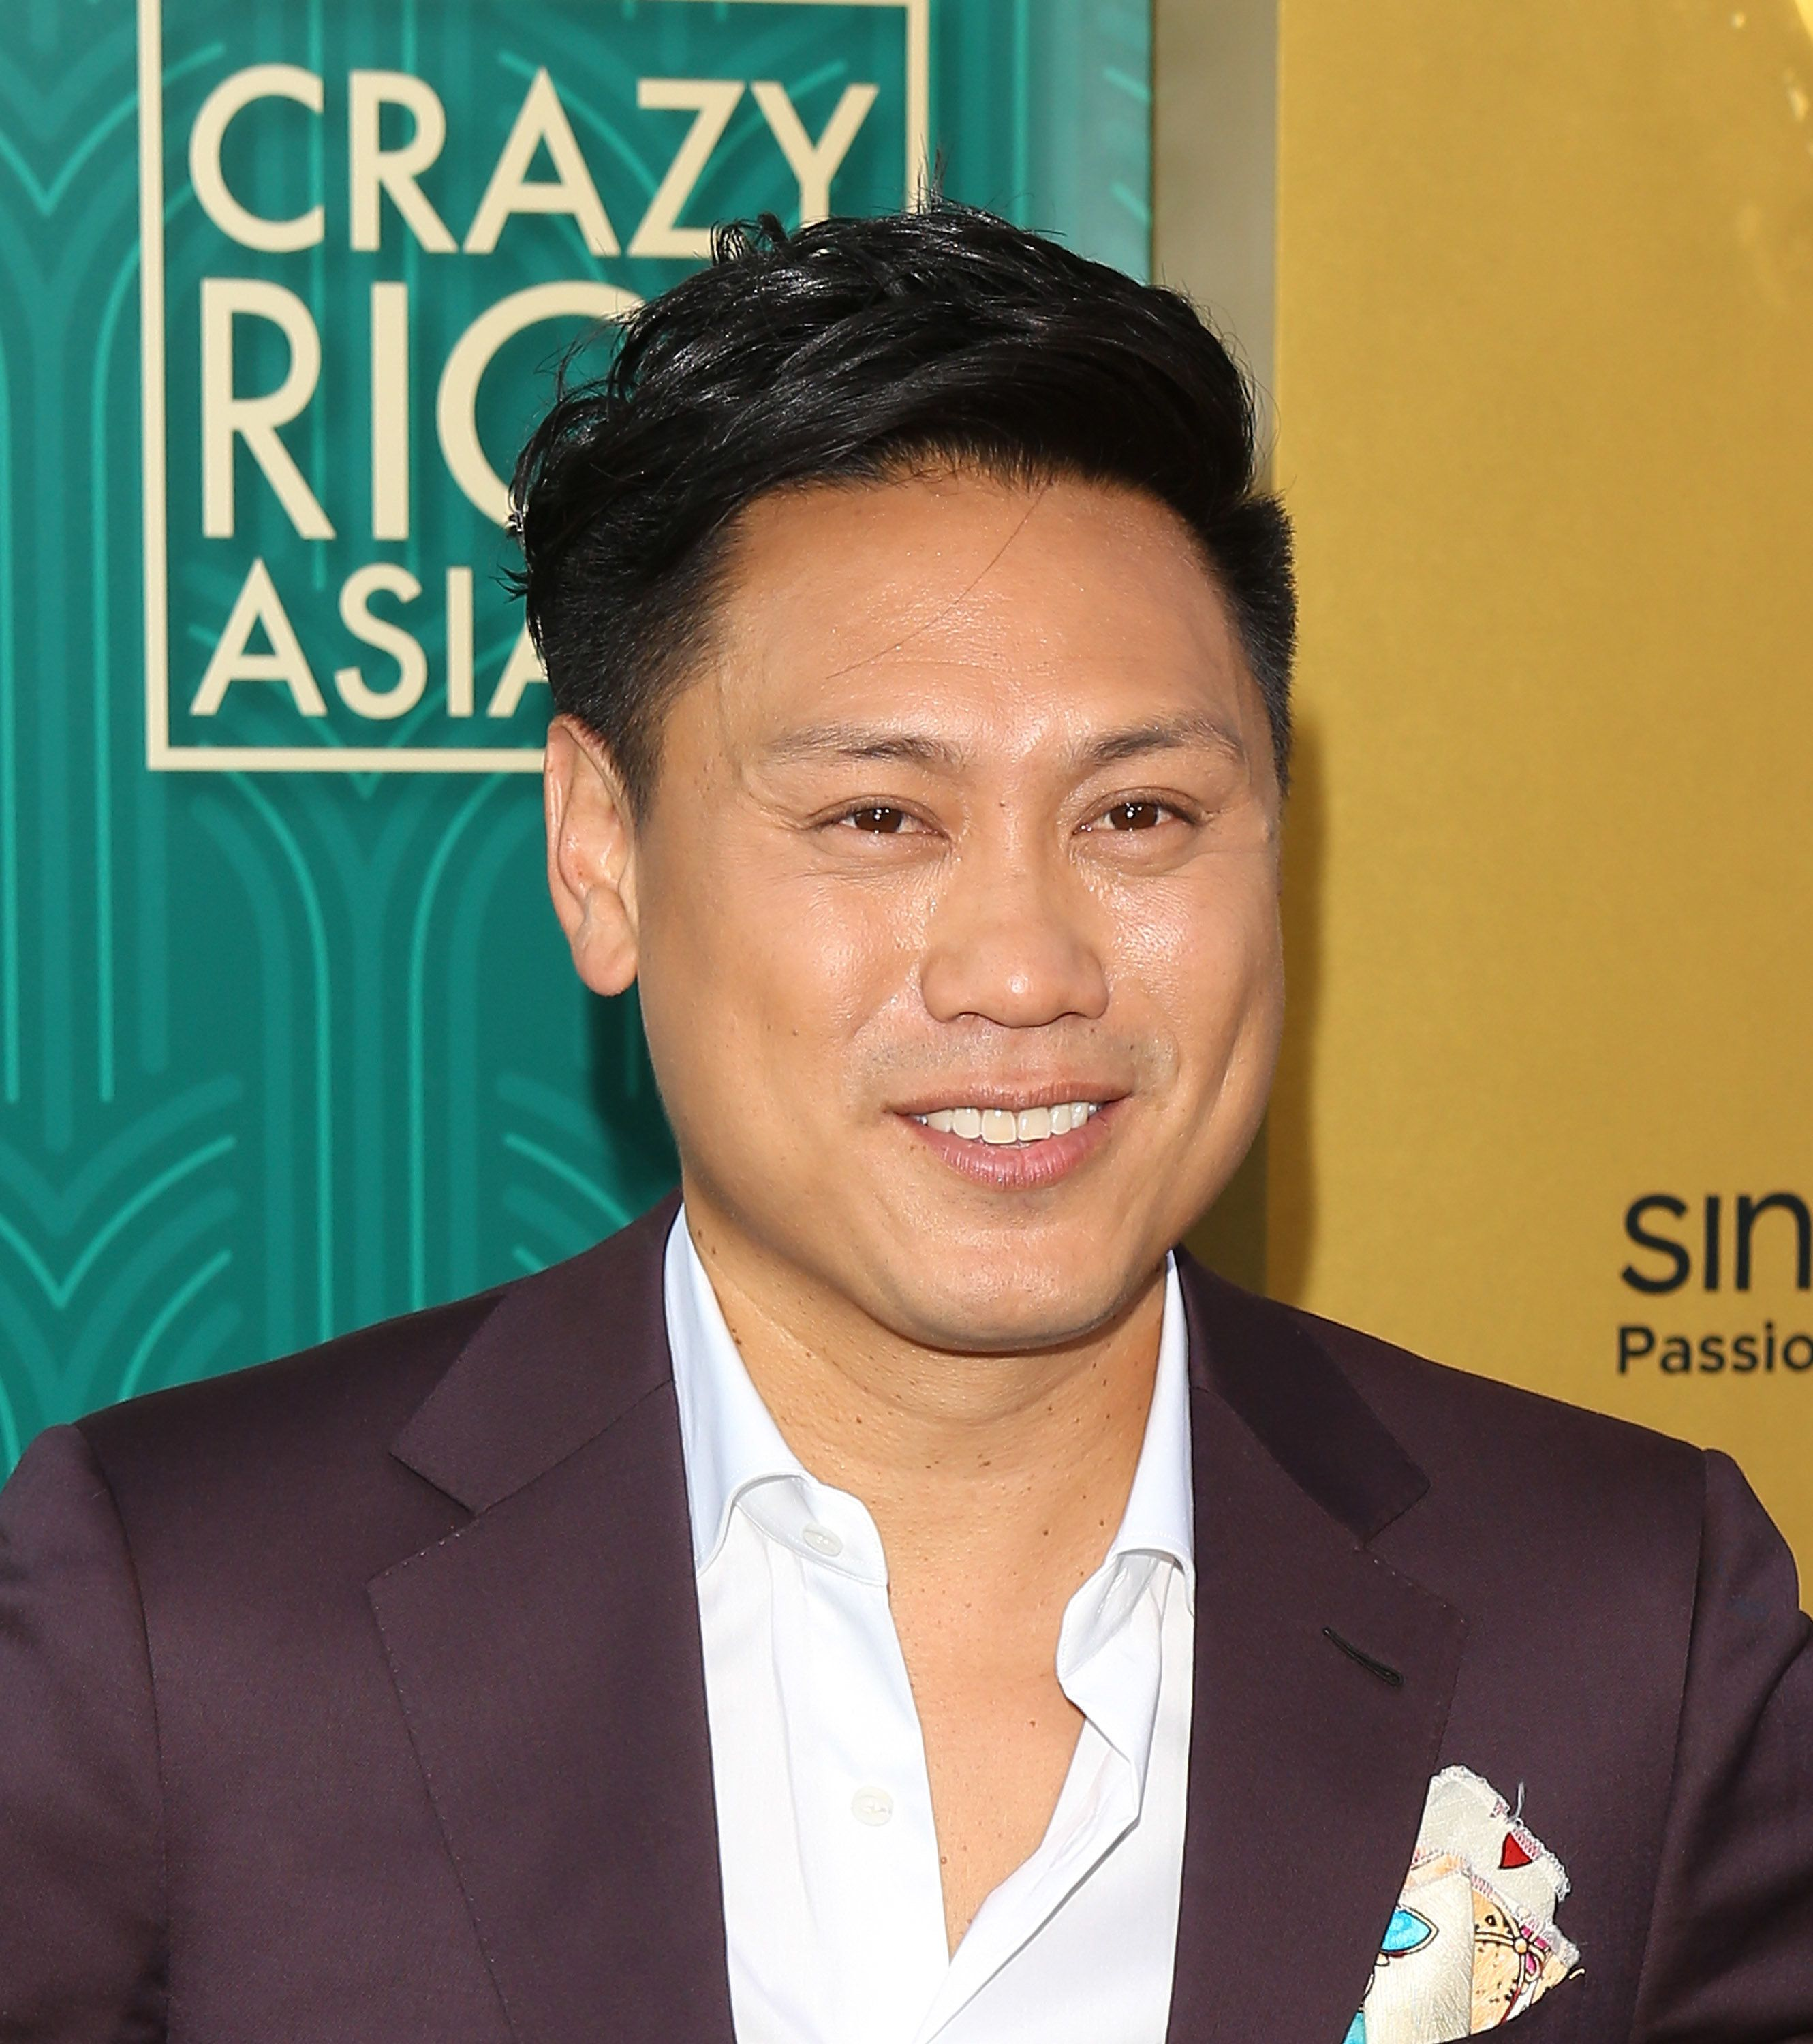 'Crazy Rich Asians' Director Jon M. Chu On His Journey To Reclaim His